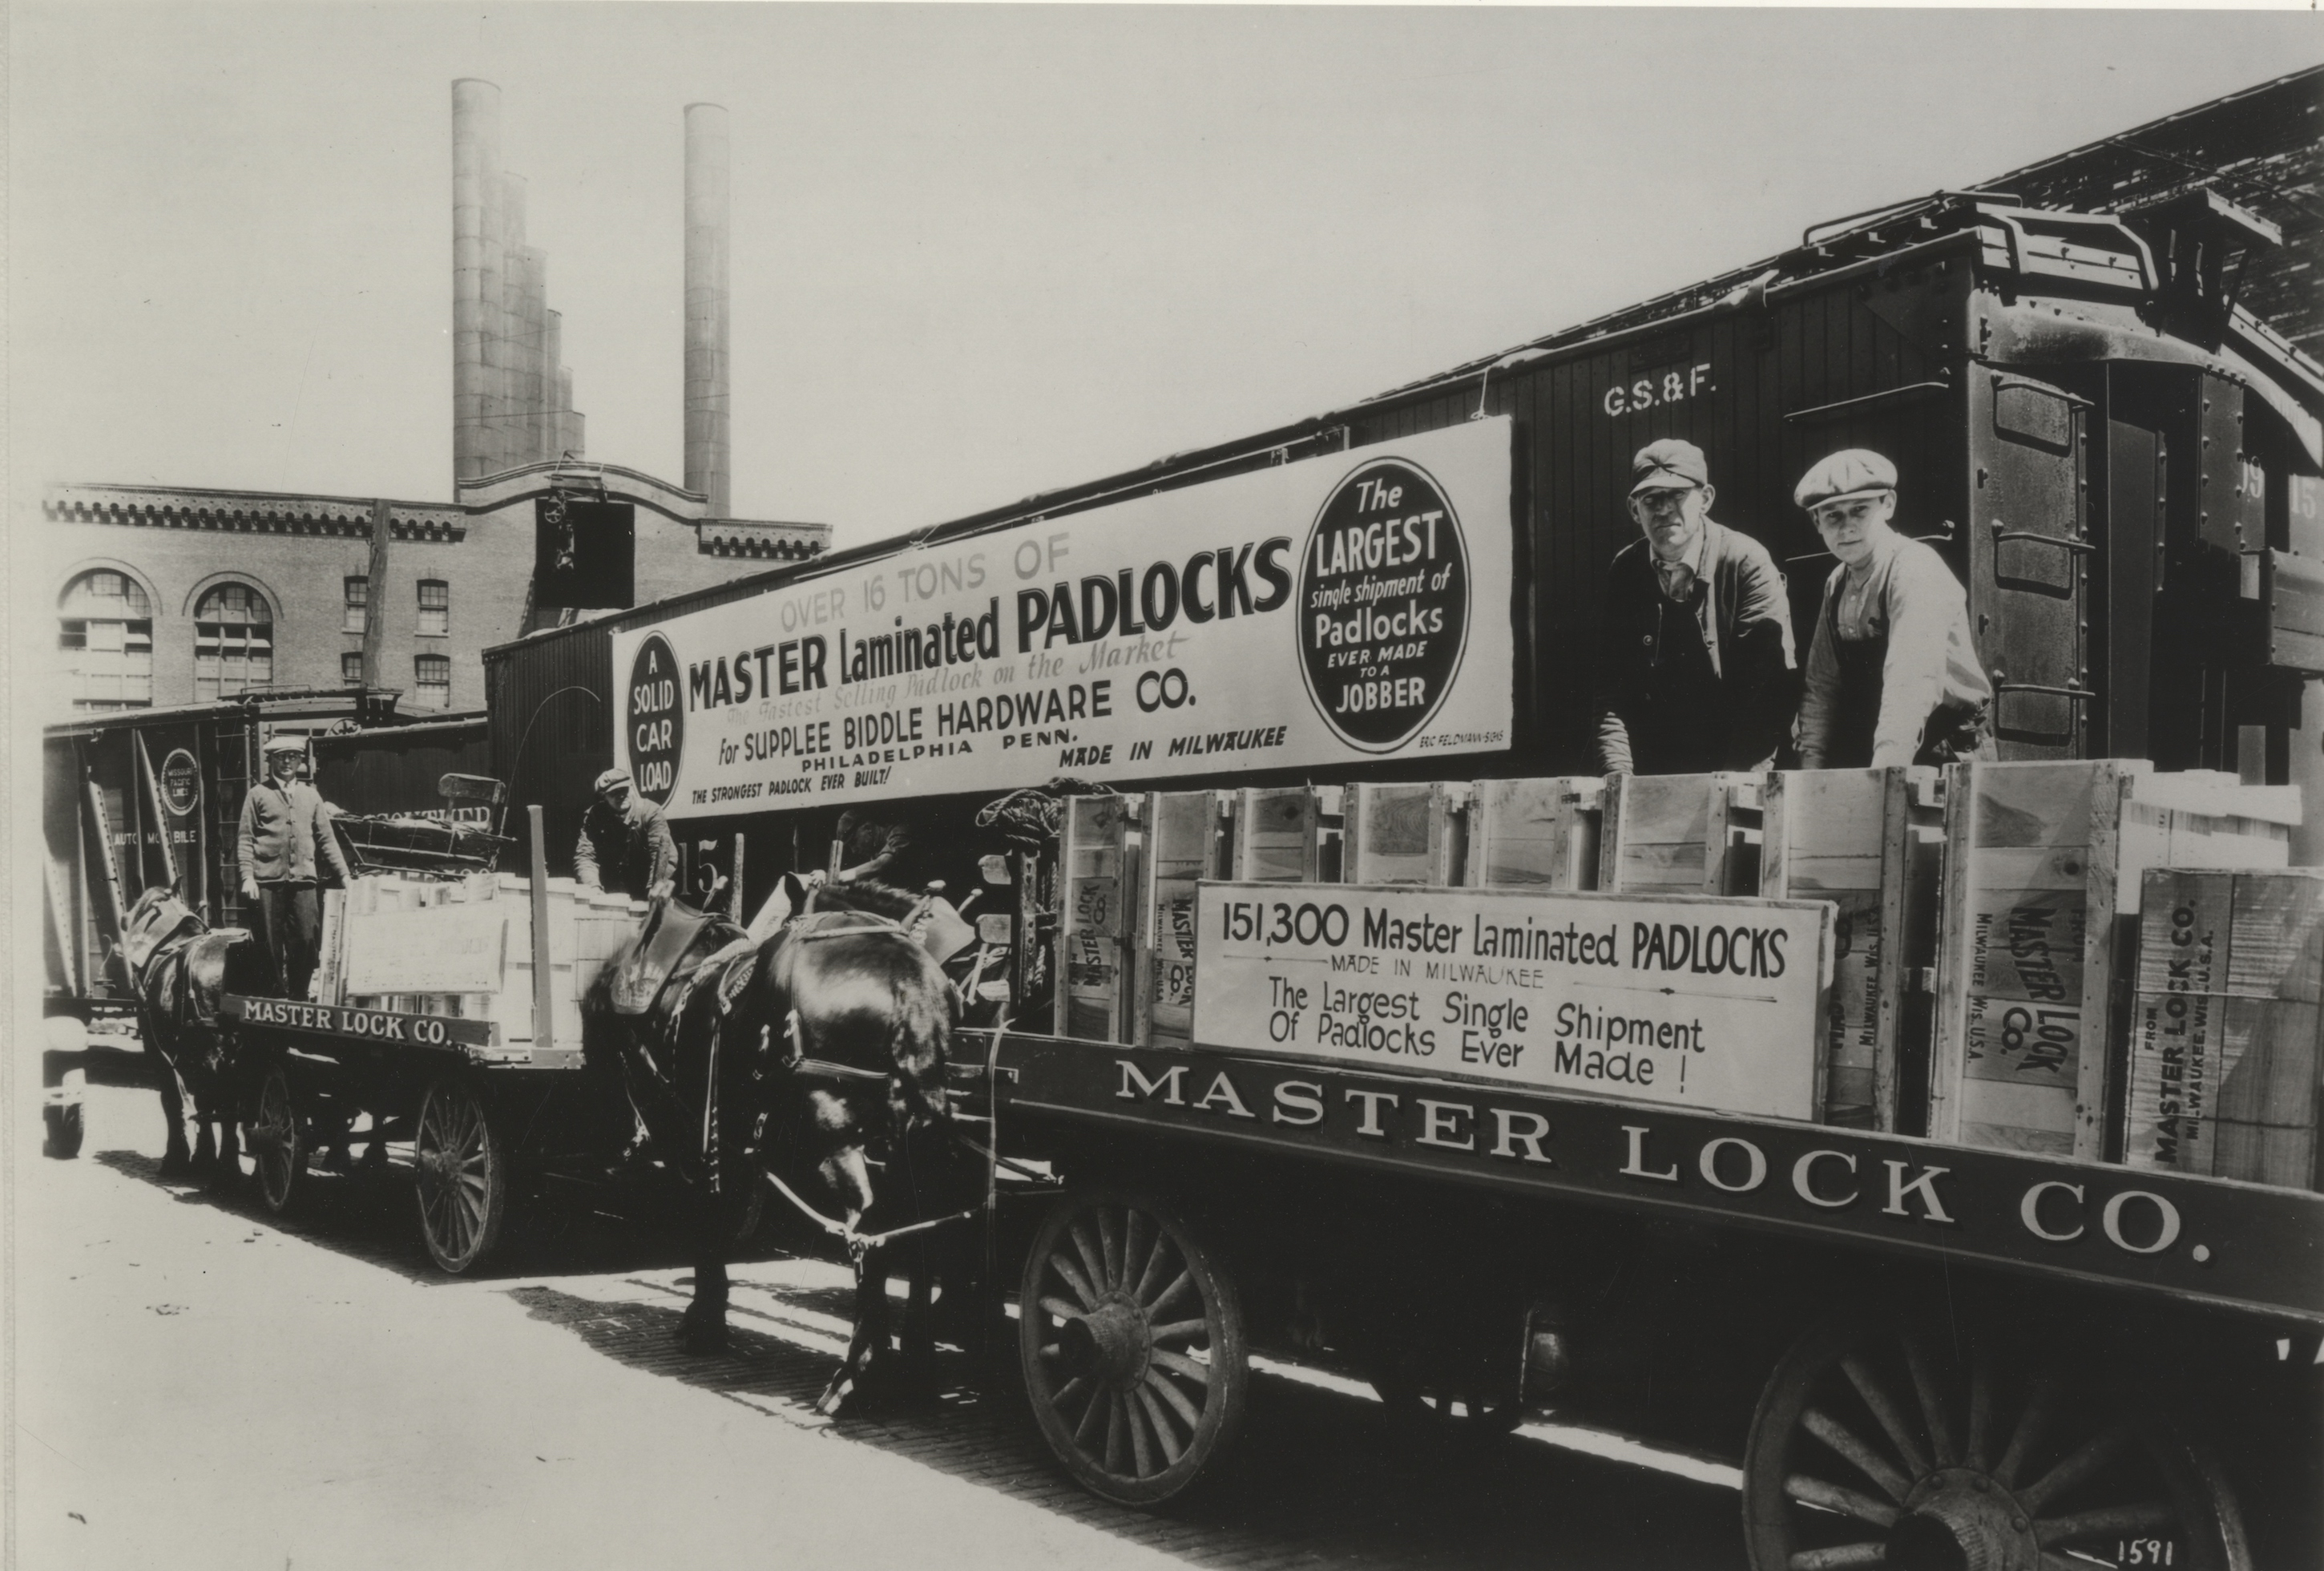 Master Lock padlocks are being loaded onto a train in the twentieth century.